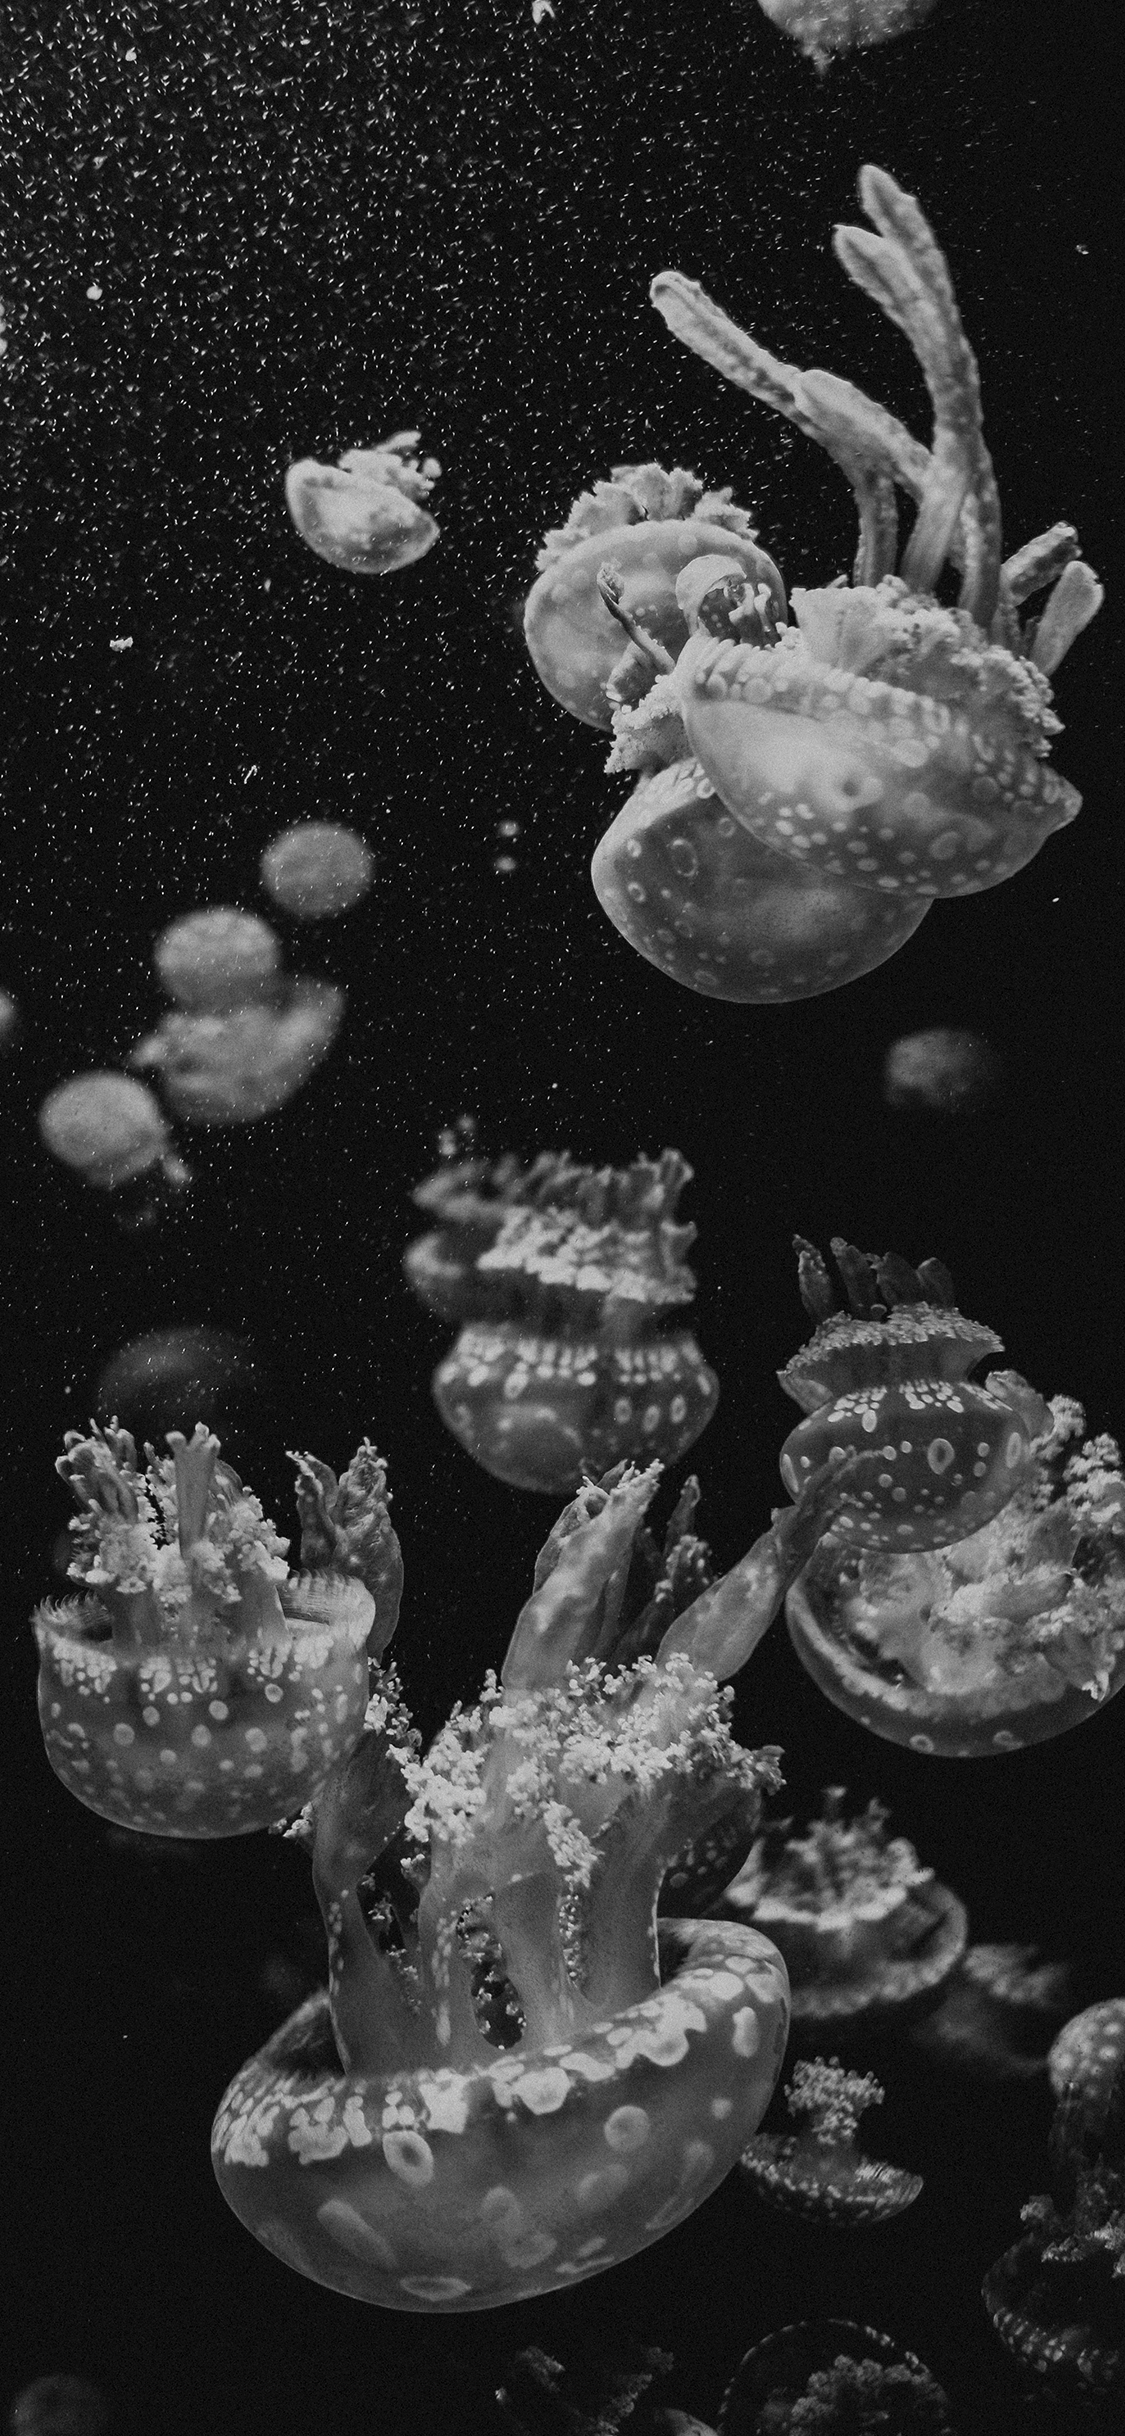 iPhone wallpaper black white jellyfish Fonds d'écran iPhone du 26/09/2018